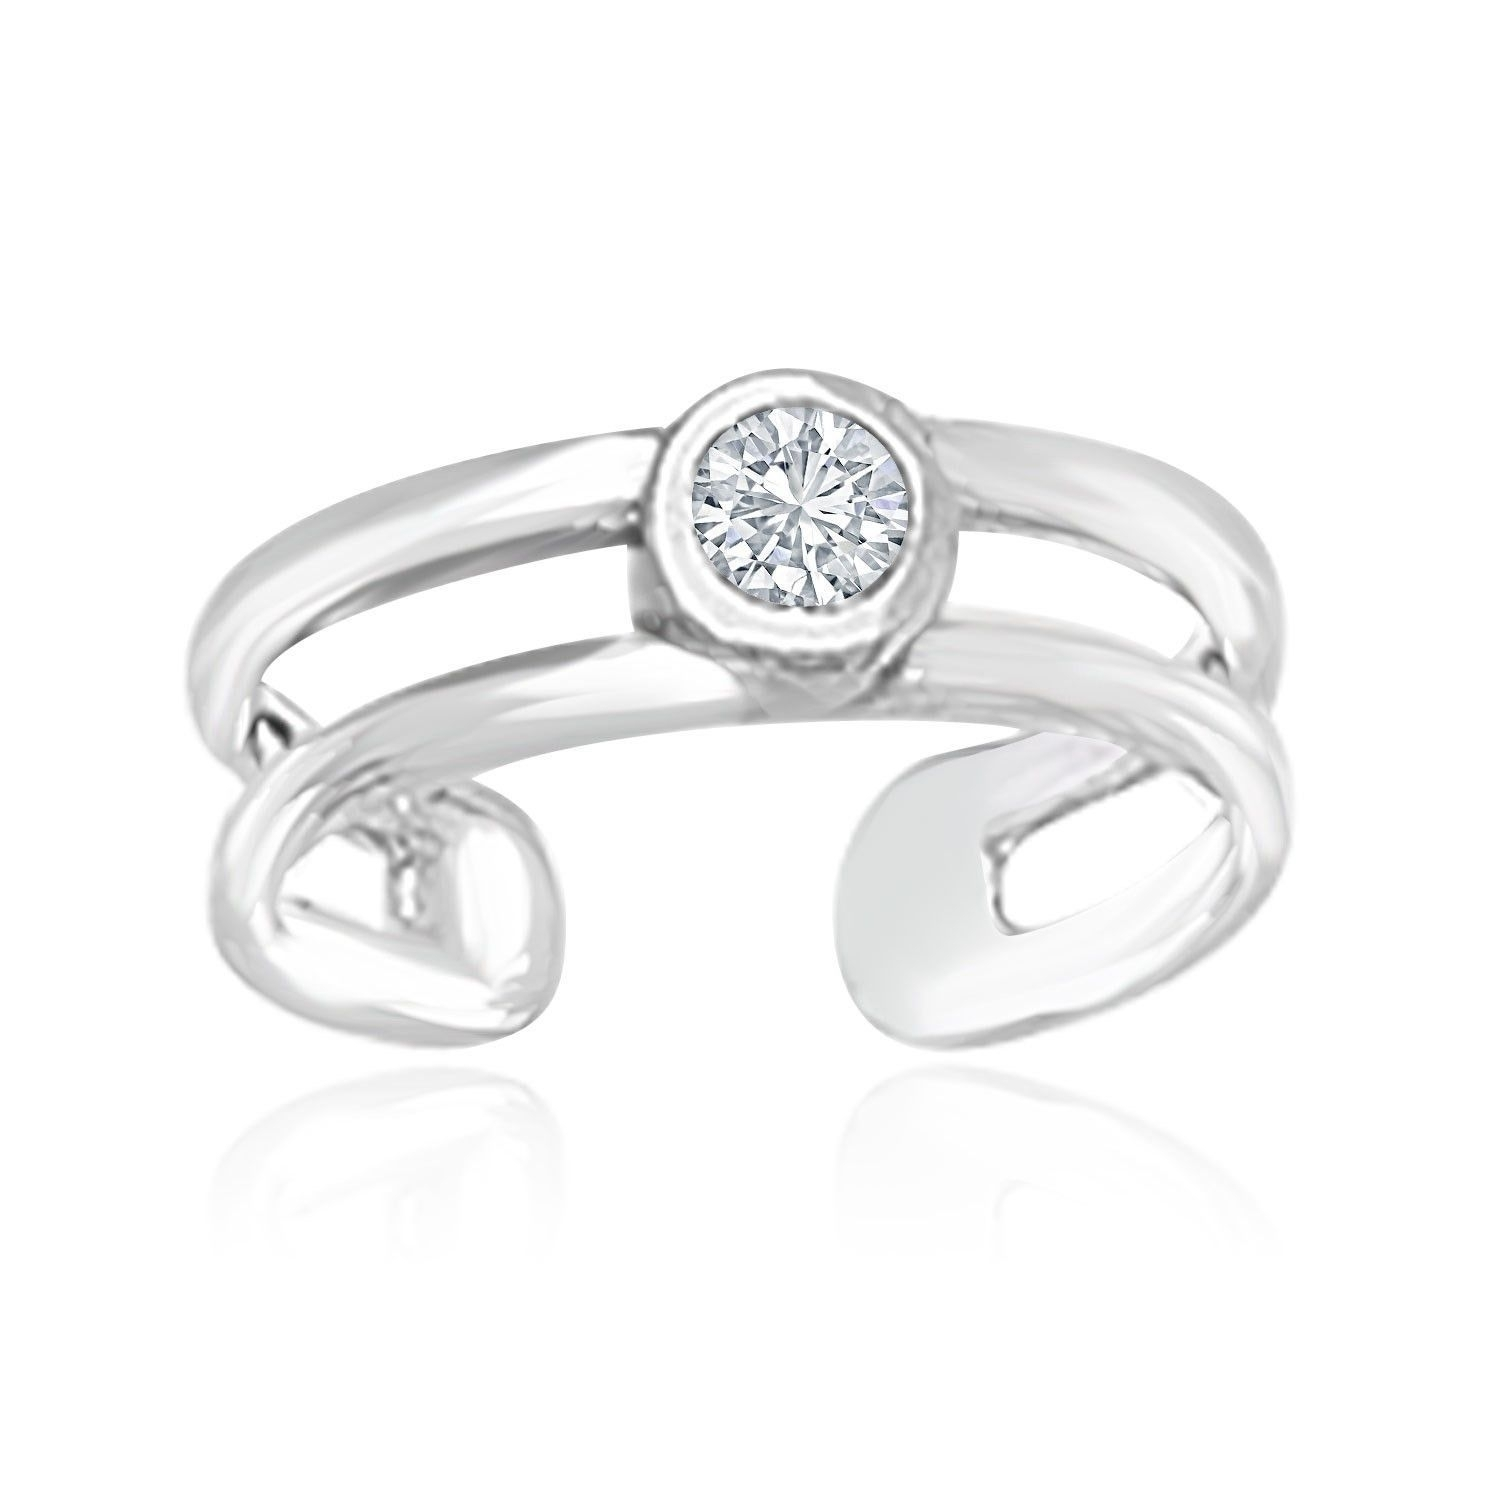 14K White Gold Cuff Type Cubic Zirconia Embellished Toe Ring Intended For Newest White Gold Diamond Toe Rings (View 4 of 15)